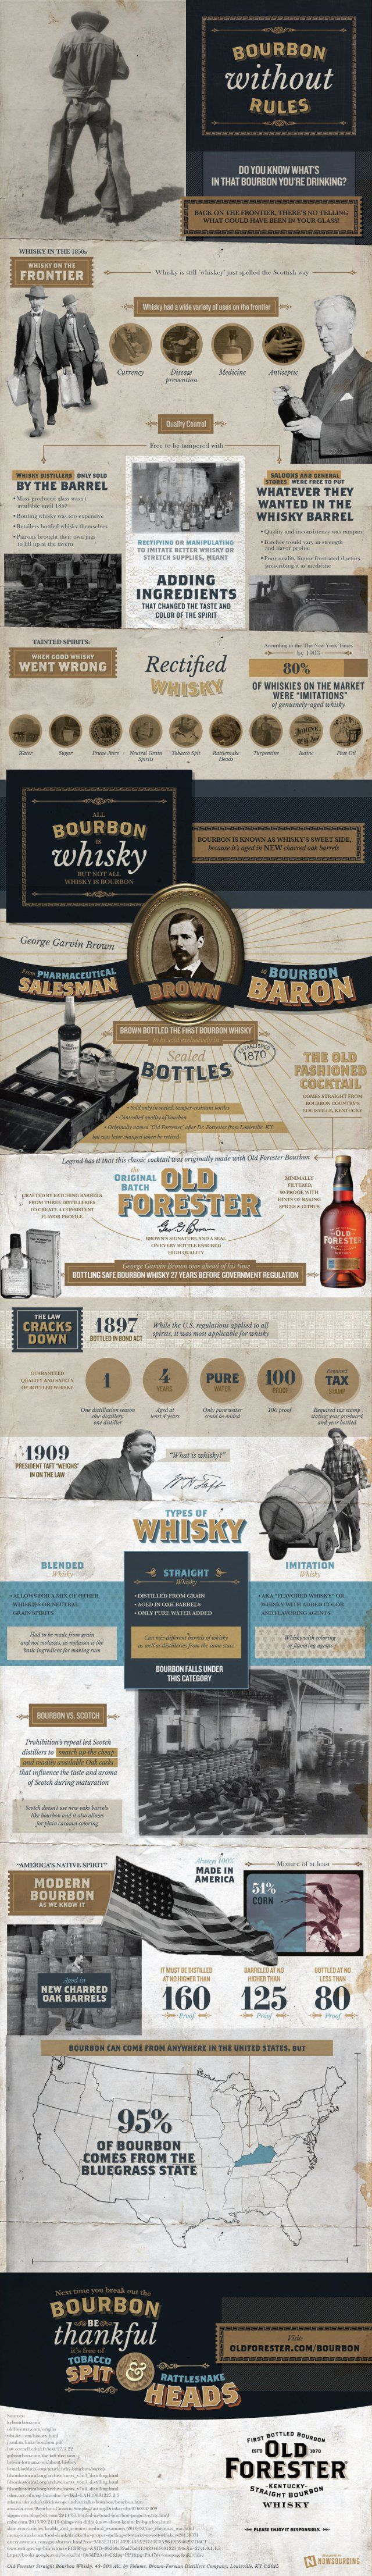 Everything You've Ever Wanted To Know About Bourbon, And Then Some (Infographic)